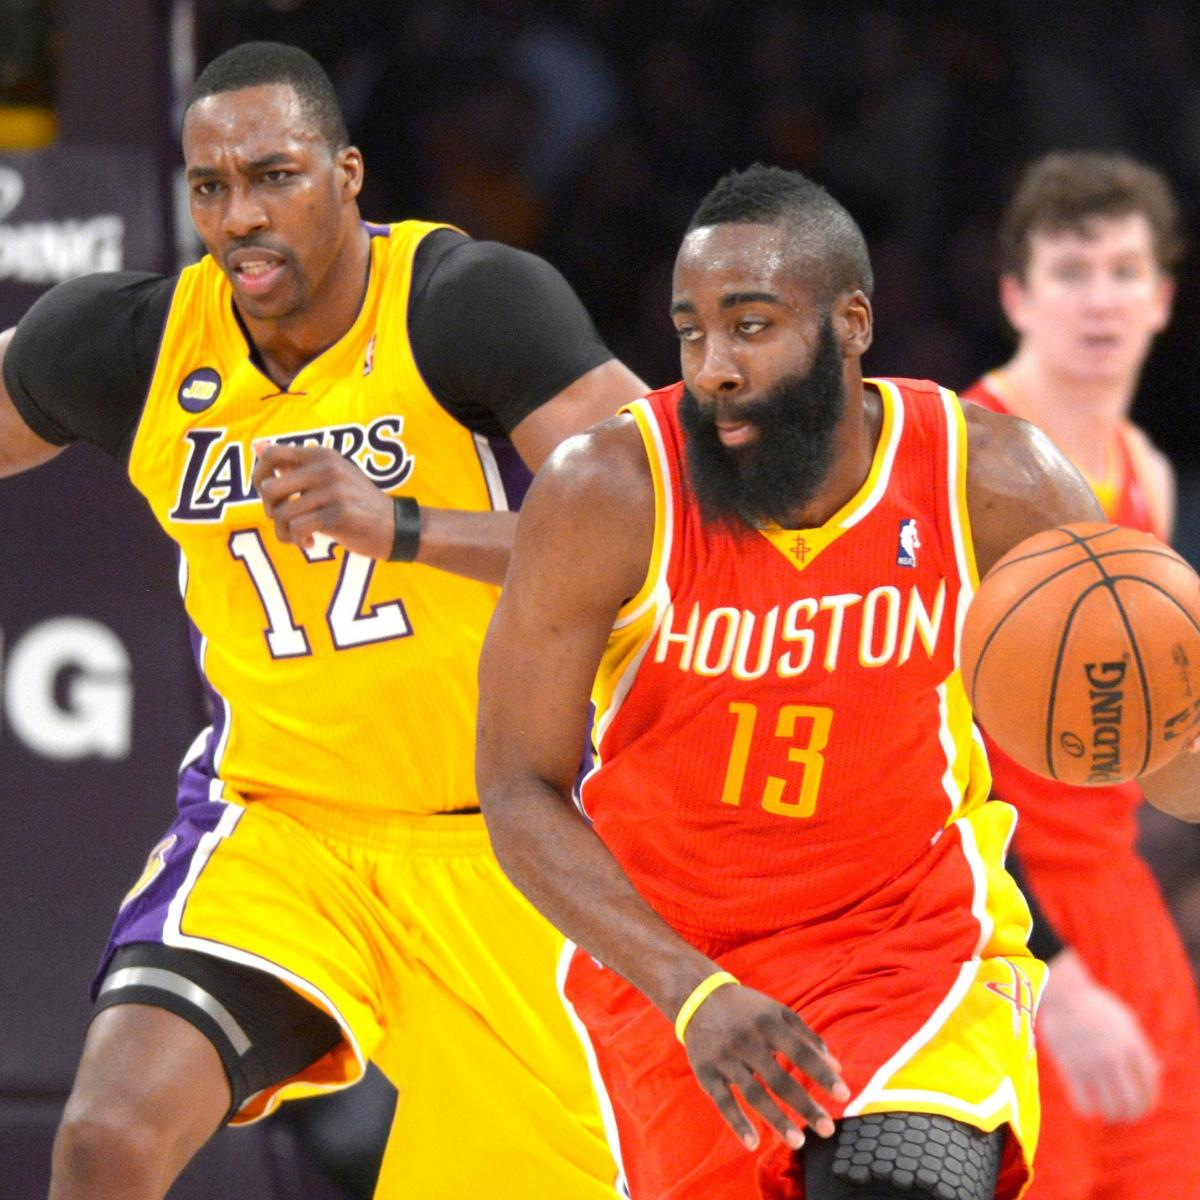 James Harden Free Agency: James Harden Thinks Houston Rockets Could 'Possibly' Lure